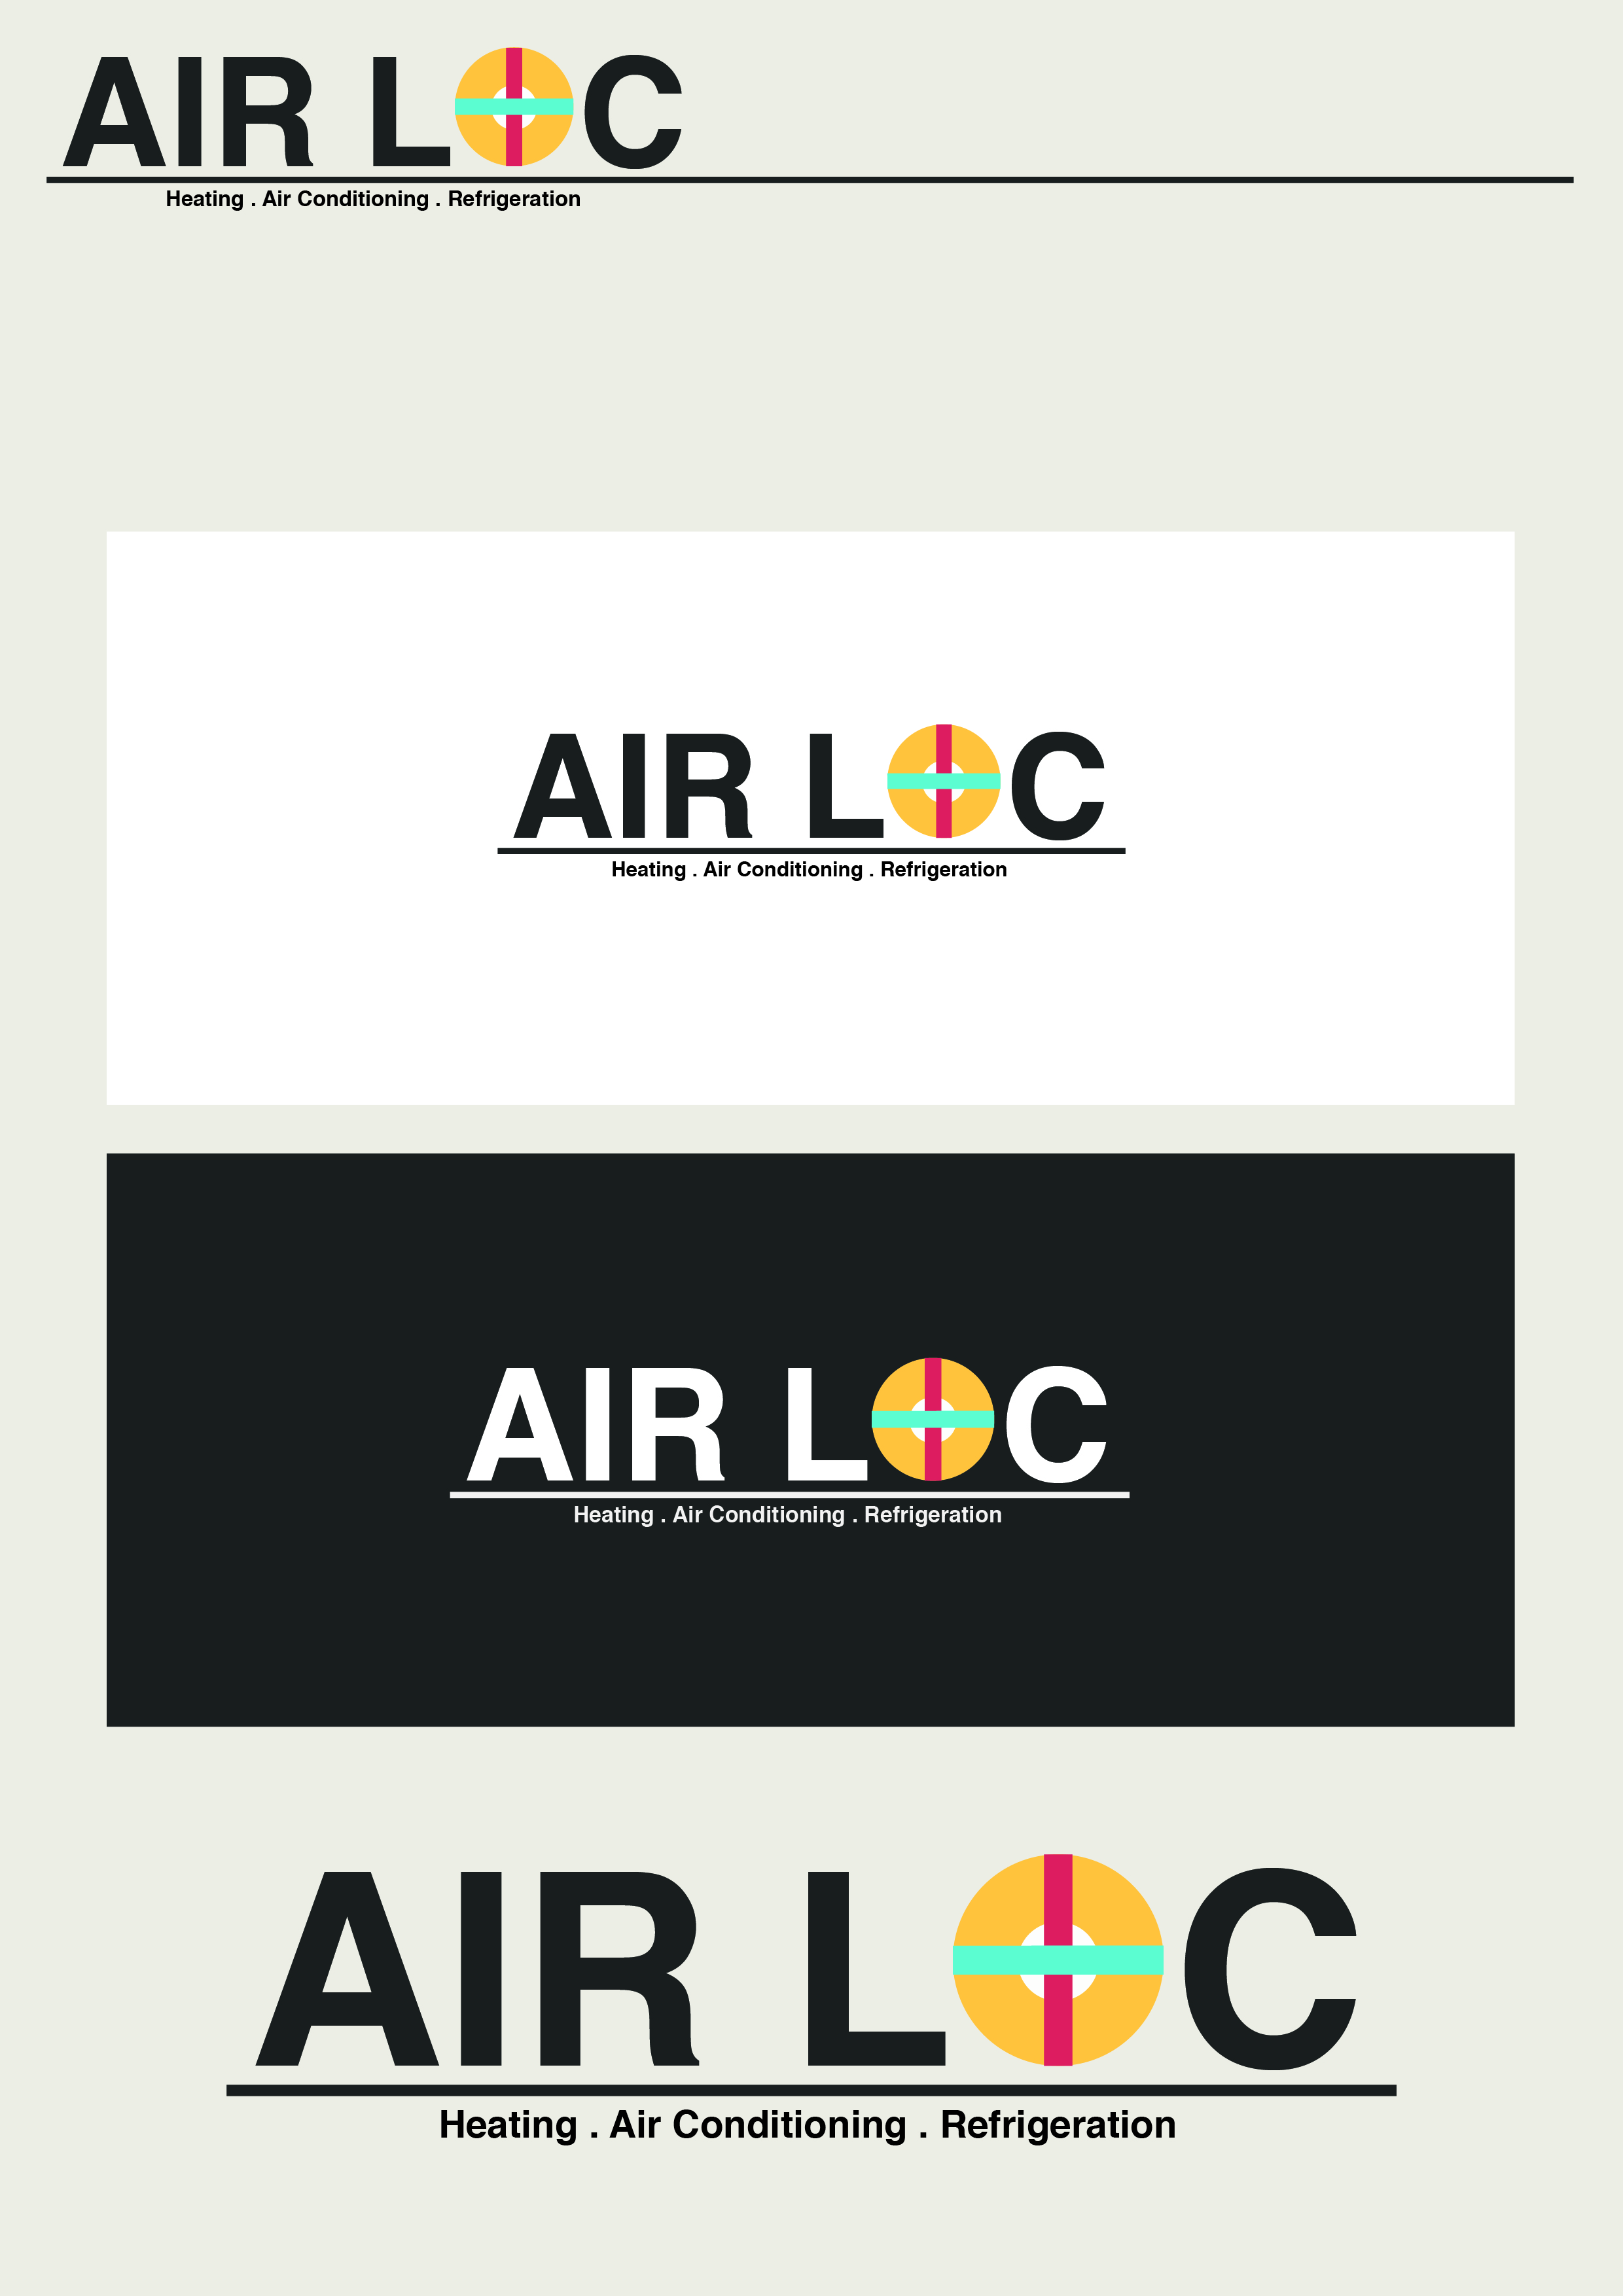 Logo Design by Arman Rostami - Entry No. 72 in the Logo Design Contest Airloc Logo Design.